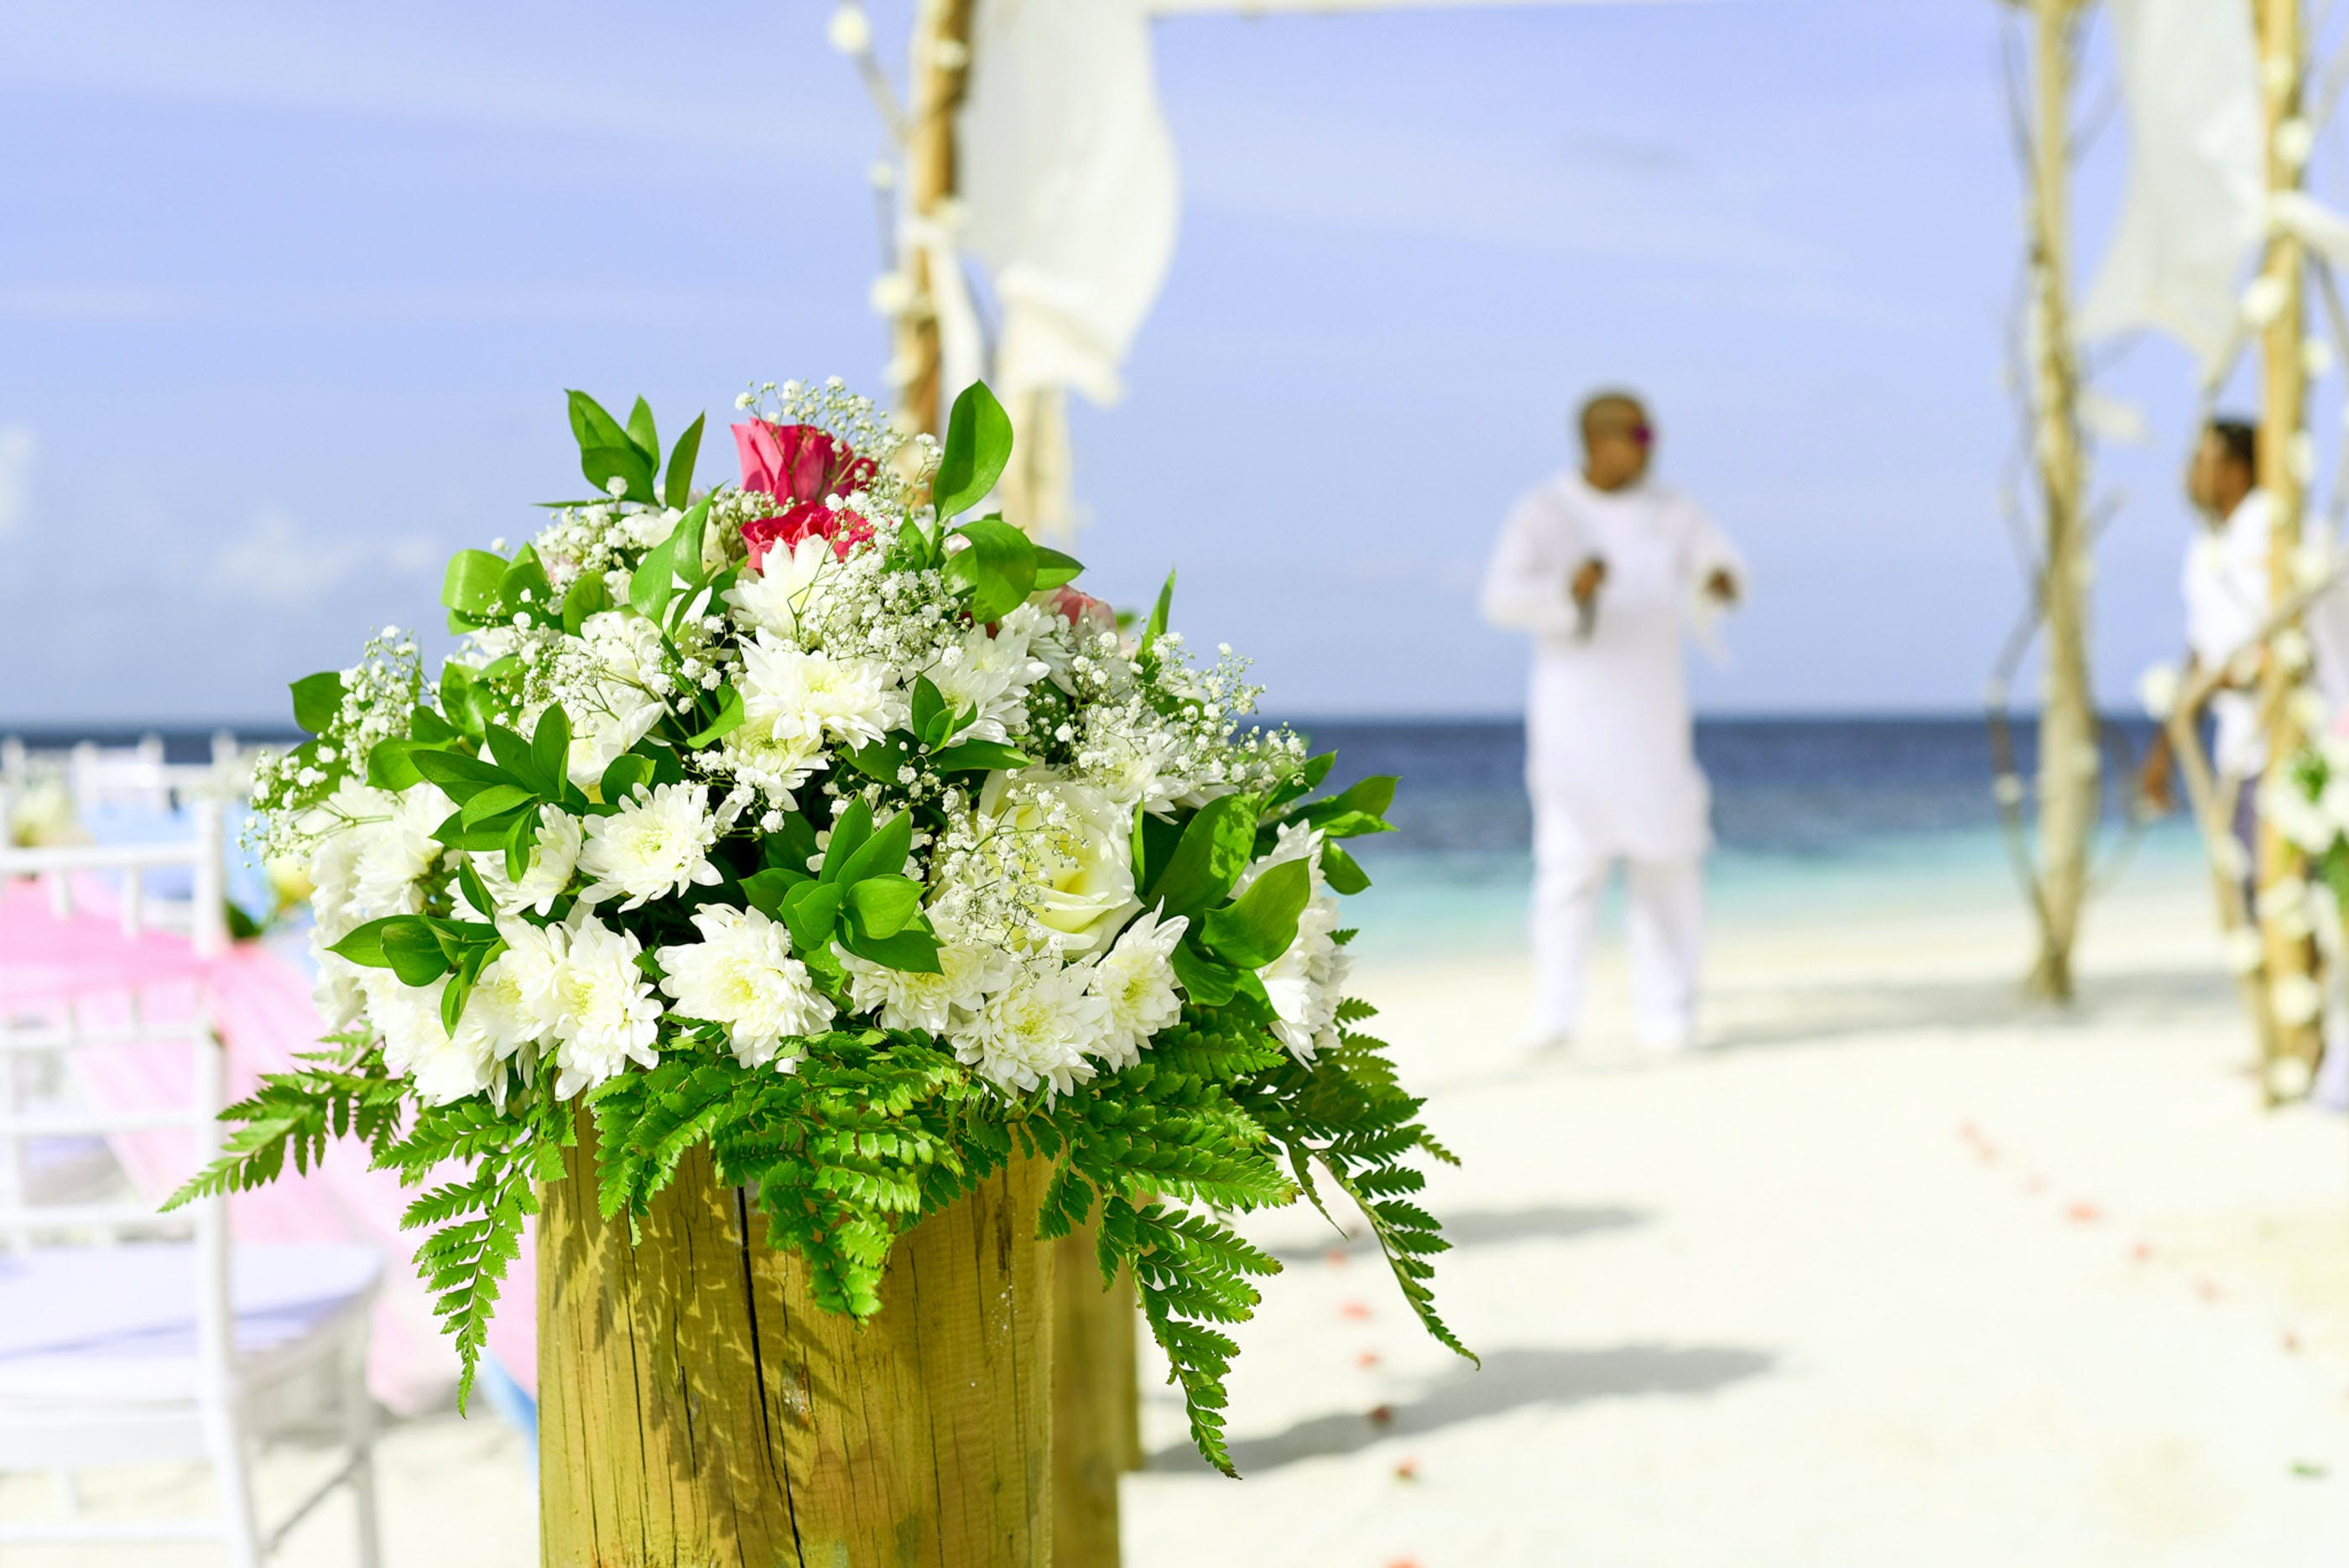 Selective Focus Photography of White Chrysanthemum Flowers Bouquet Near Man in White Thobe on Seashore